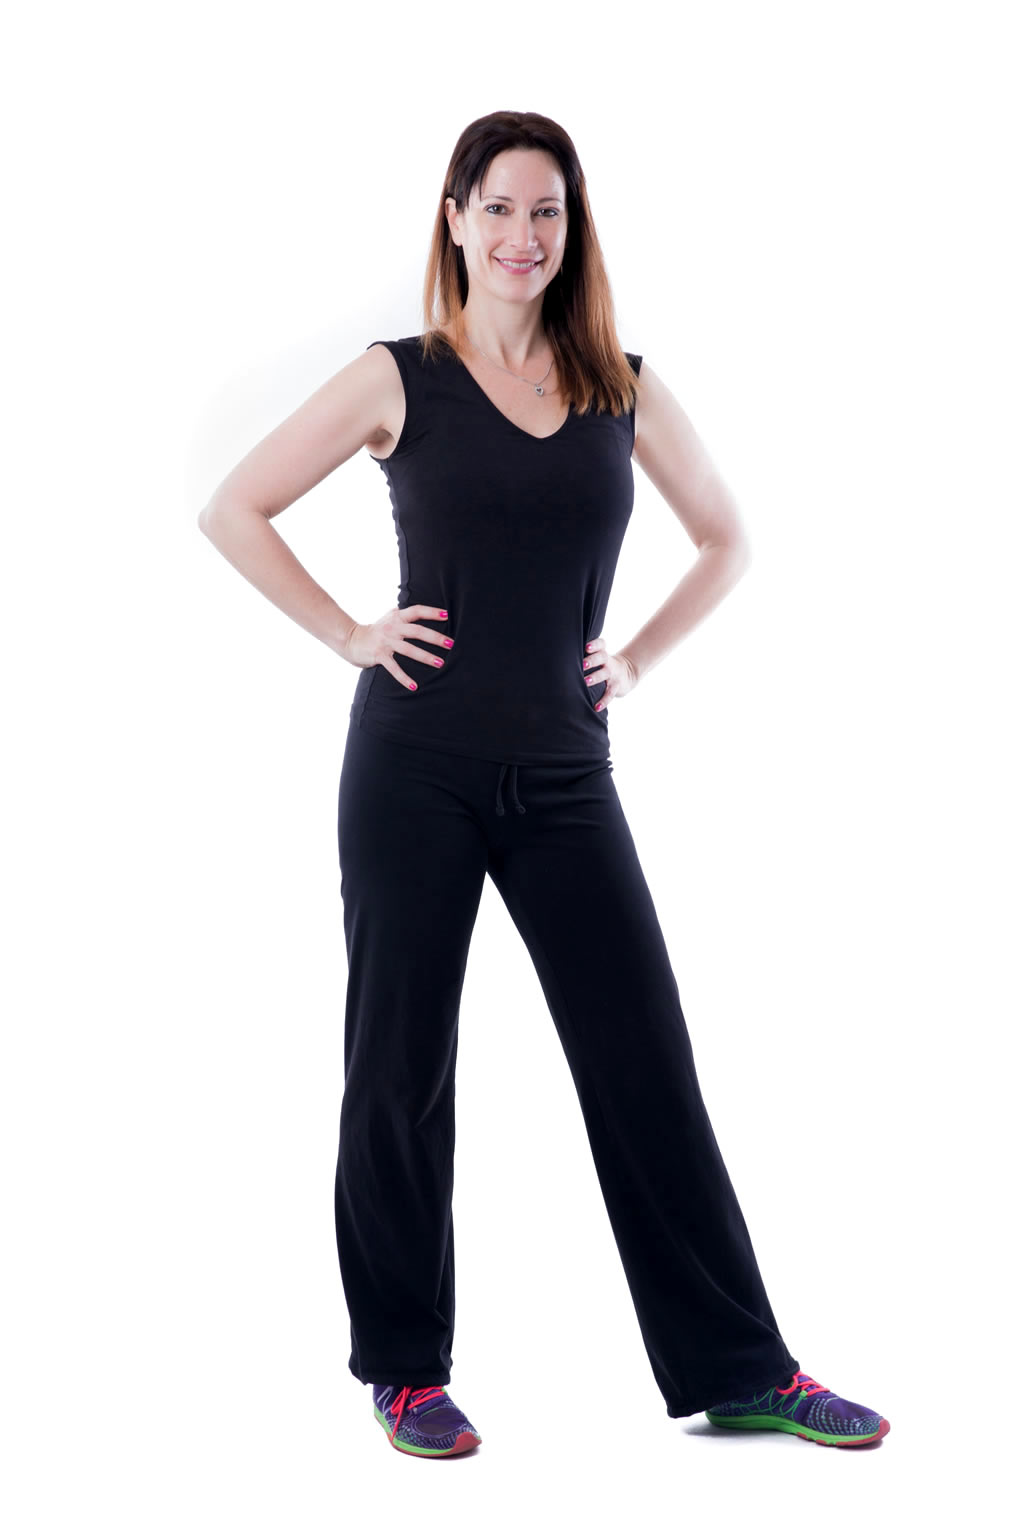 Personal Trainers Certified Trainer Fitness Personal Training Hong